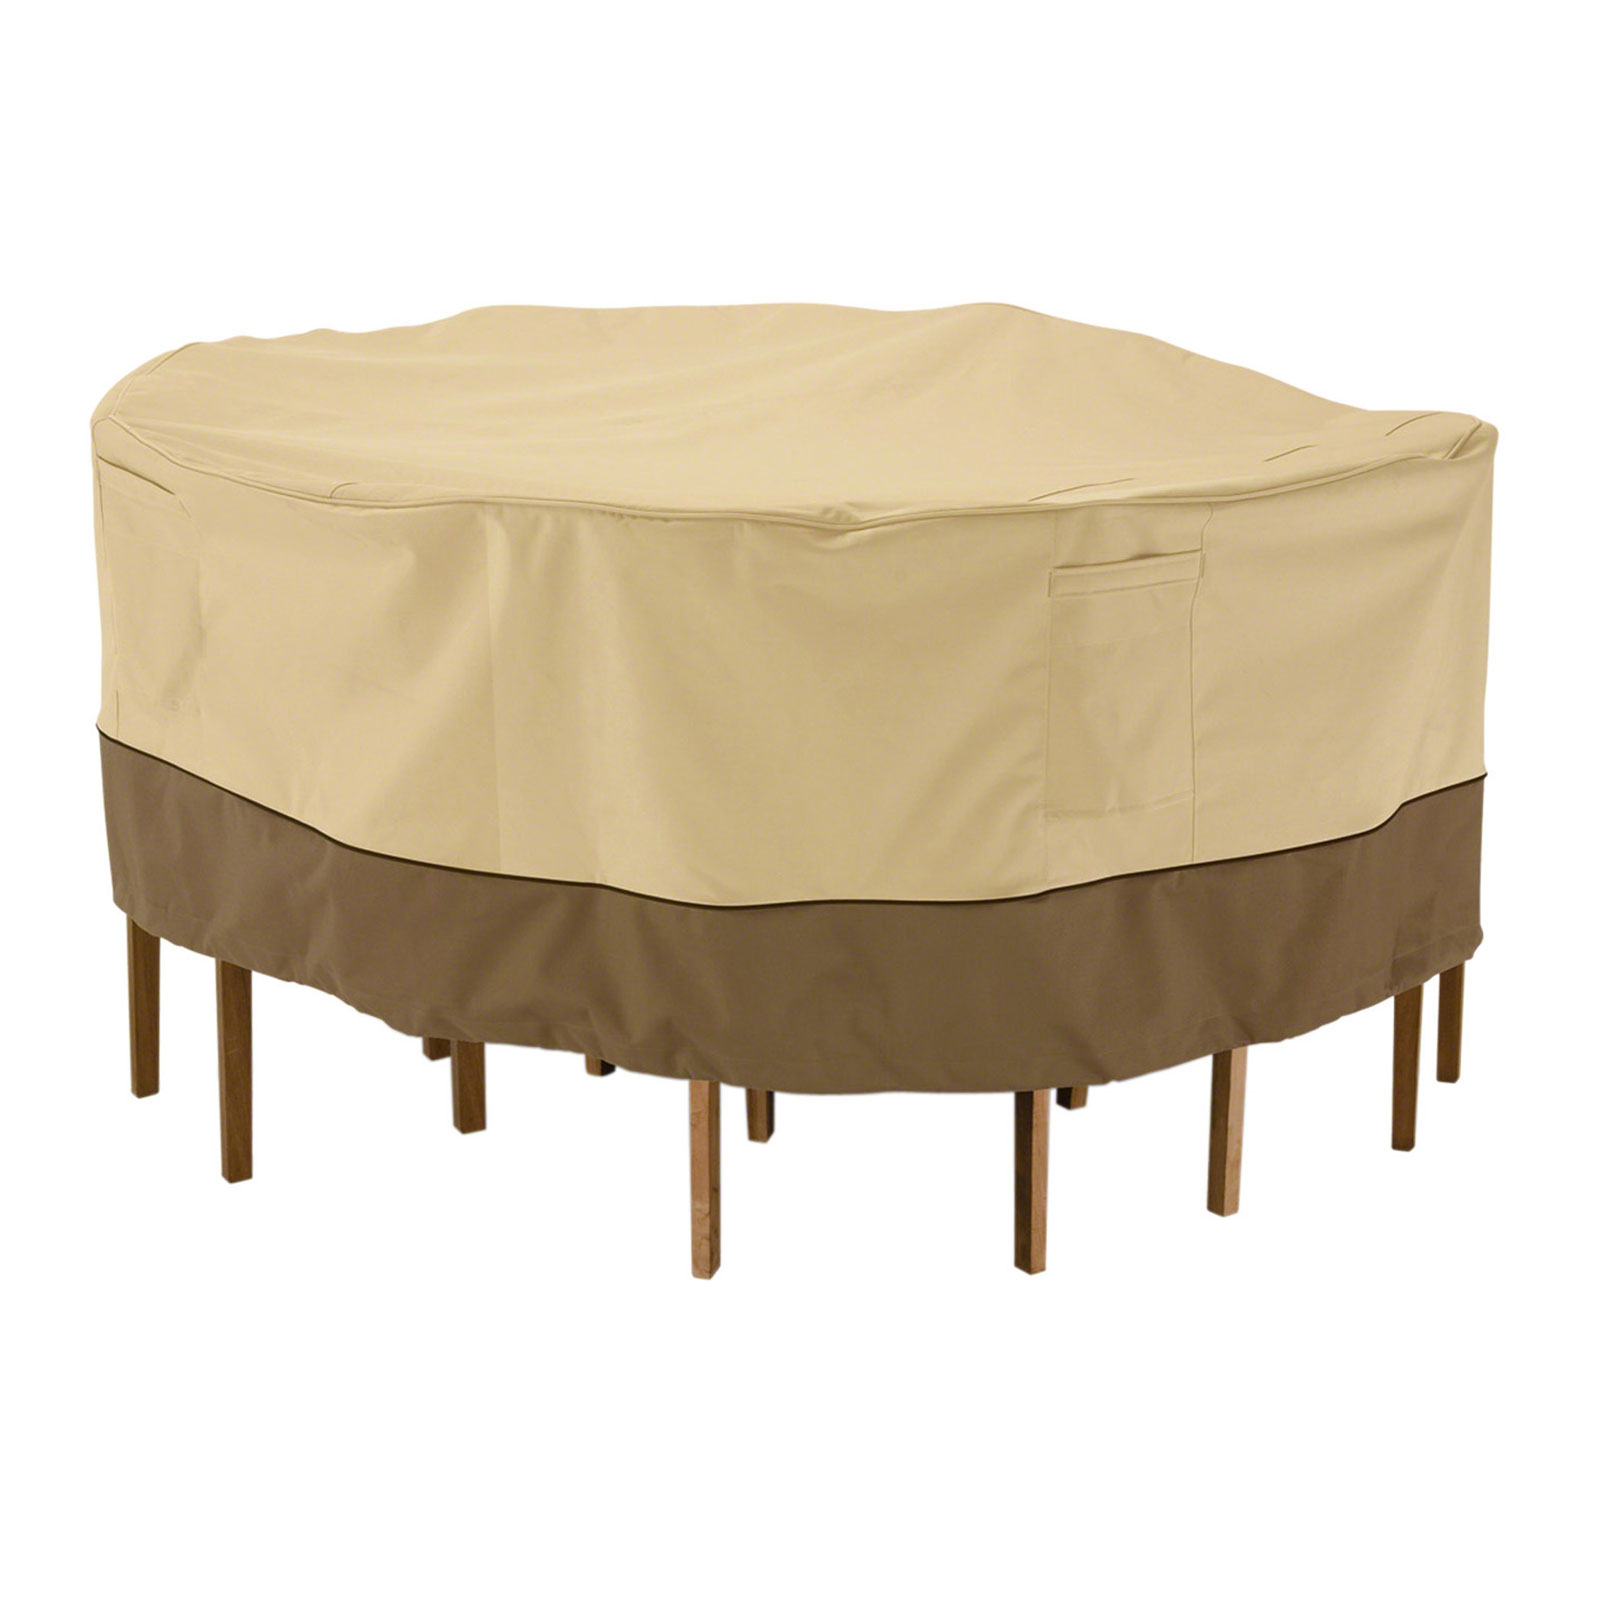 Patio table cover round veranda in patio furniture covers for Patio furniture covers